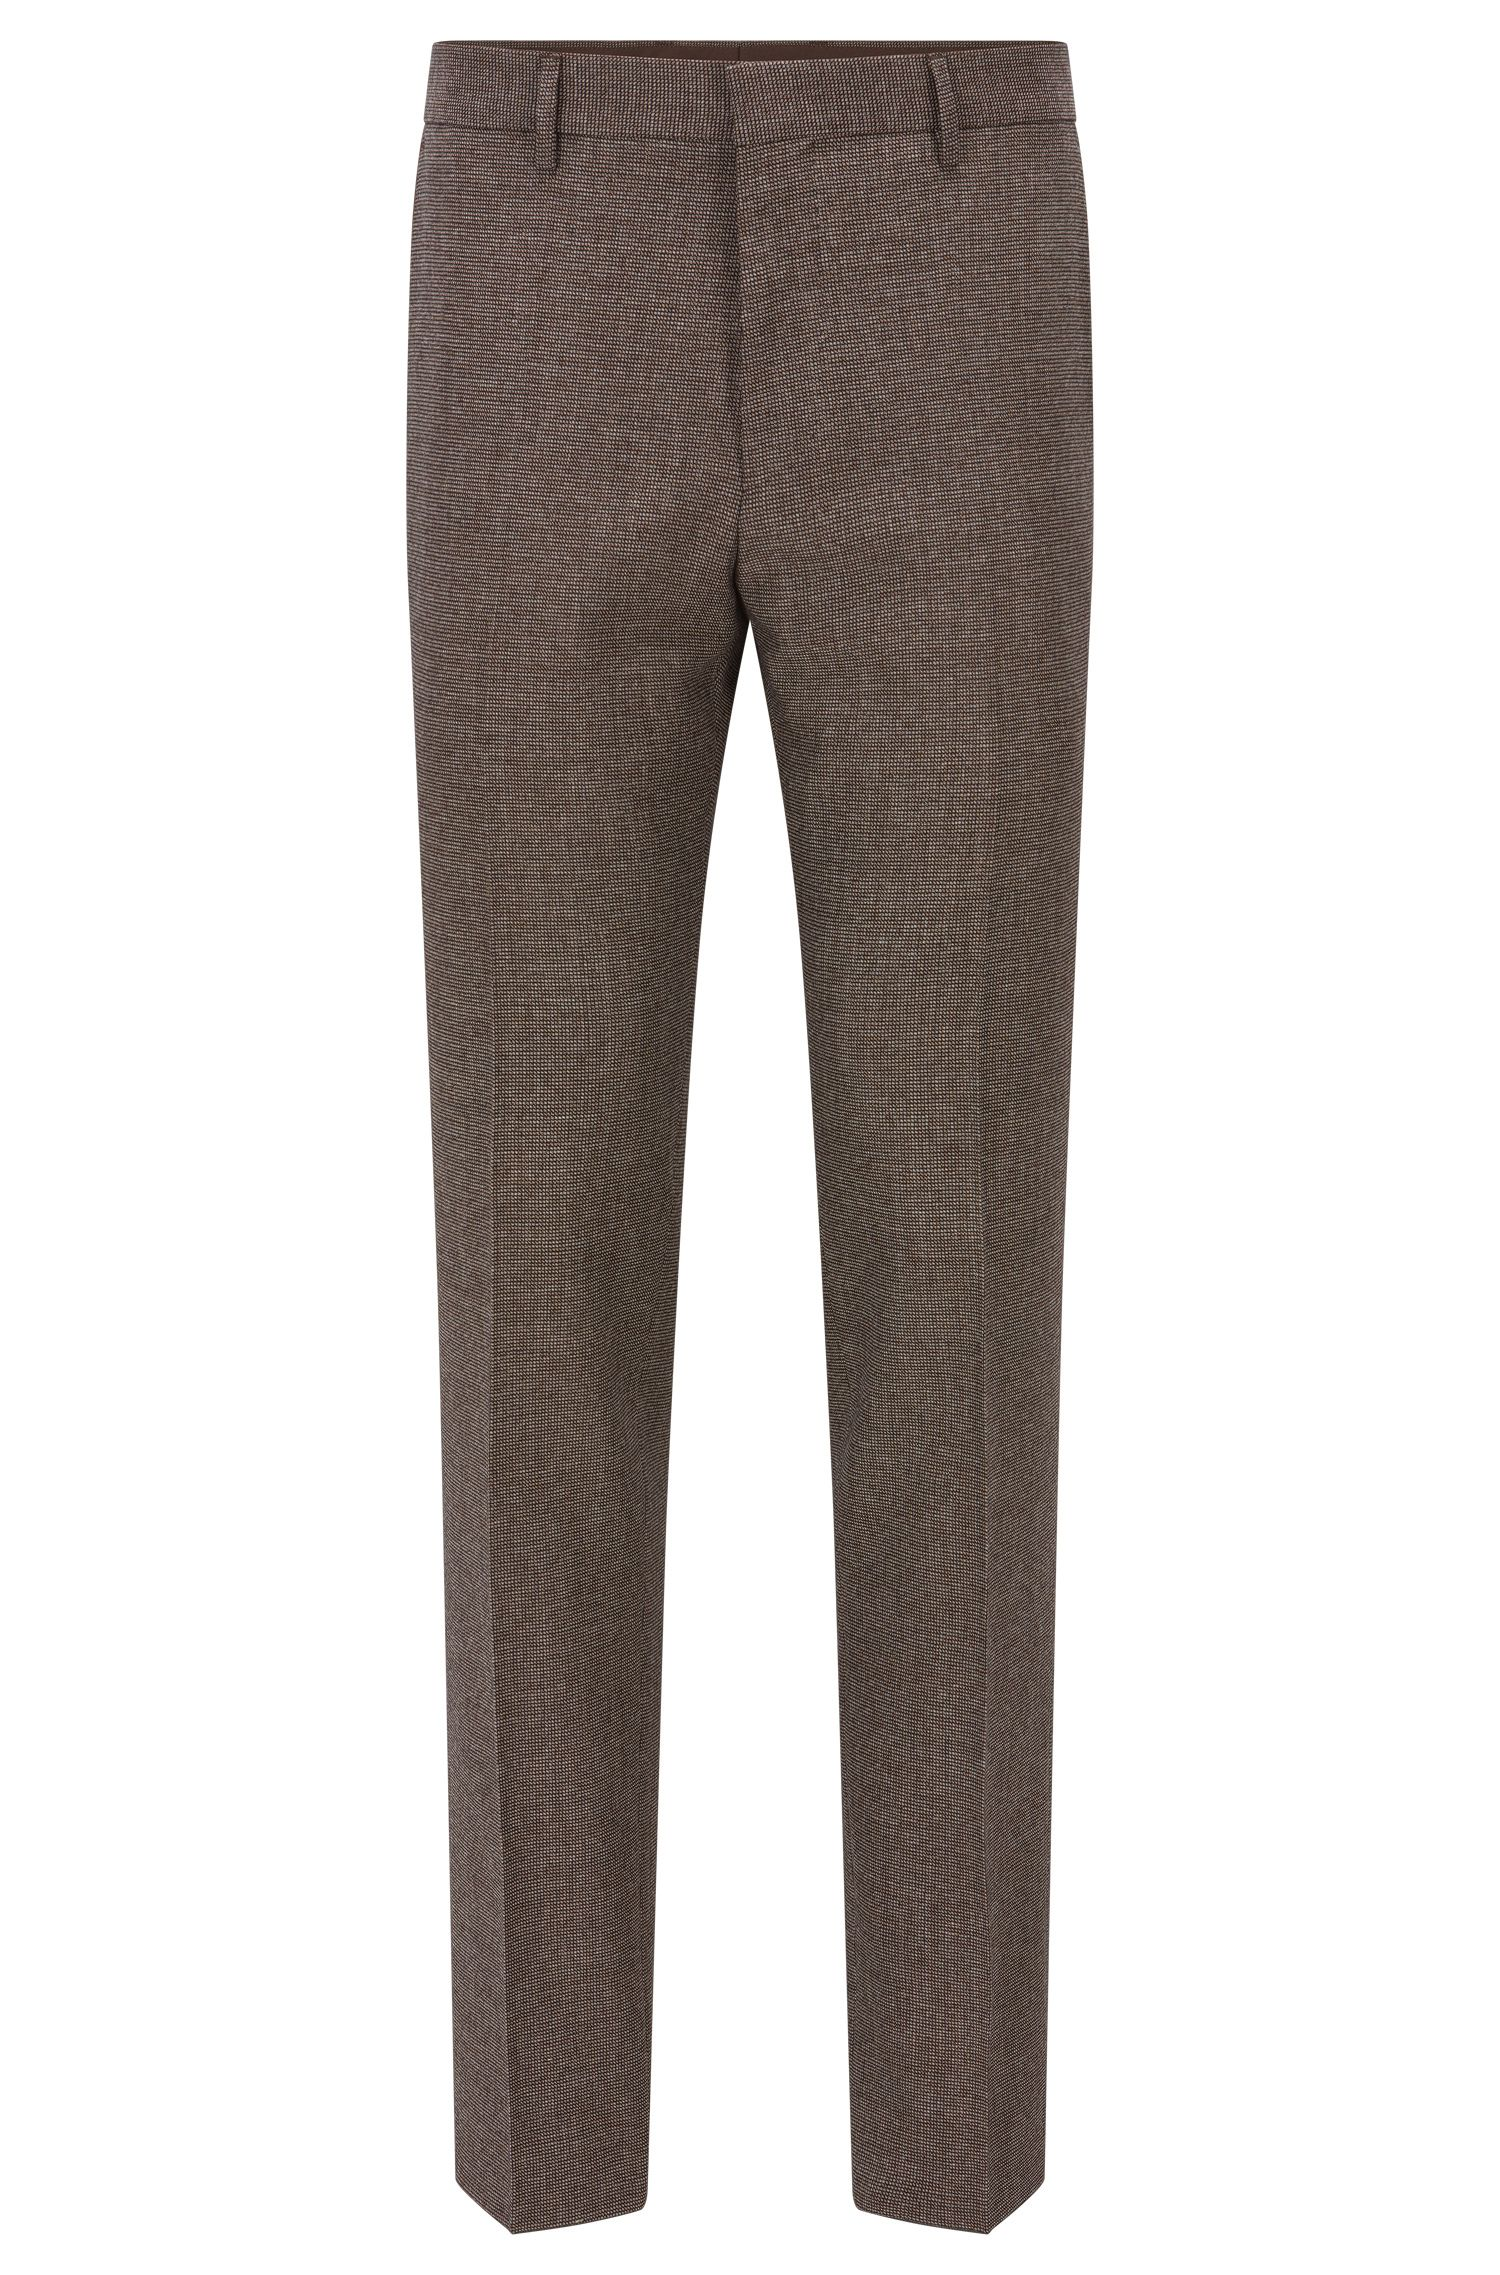 Nailhead Wool Cotton Dress Pants, Slim Fit | Giro, Khaki